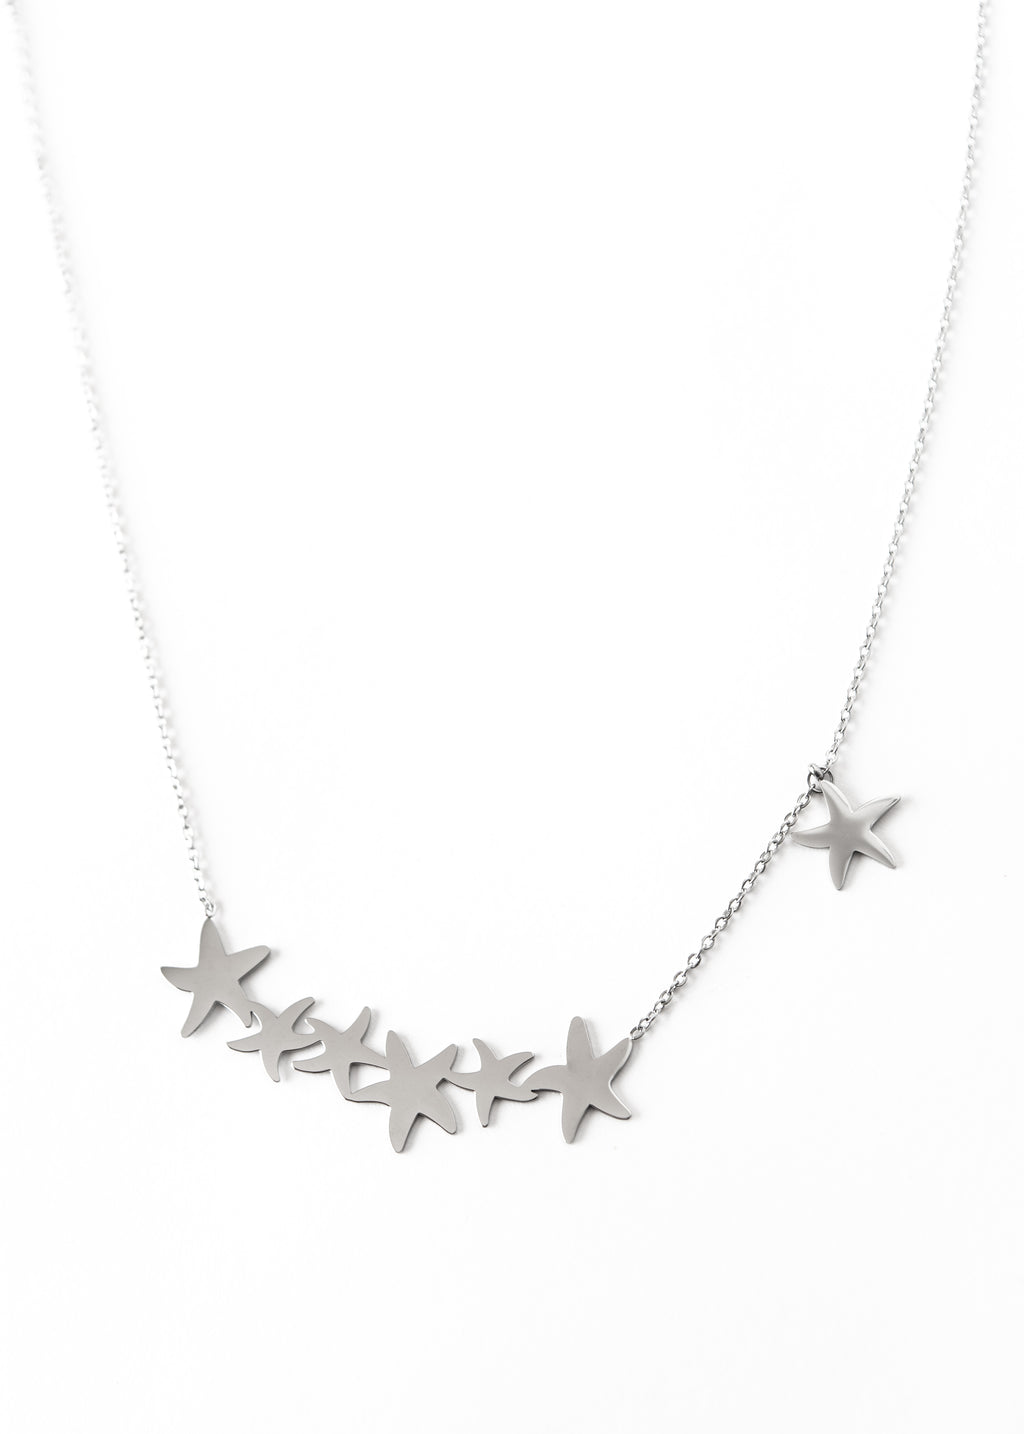 Beck & Boosh Joined Starfish Necklace Six Starfish Joined Together With One Hanging Two Inches Above Plated Silver Stainless Steel